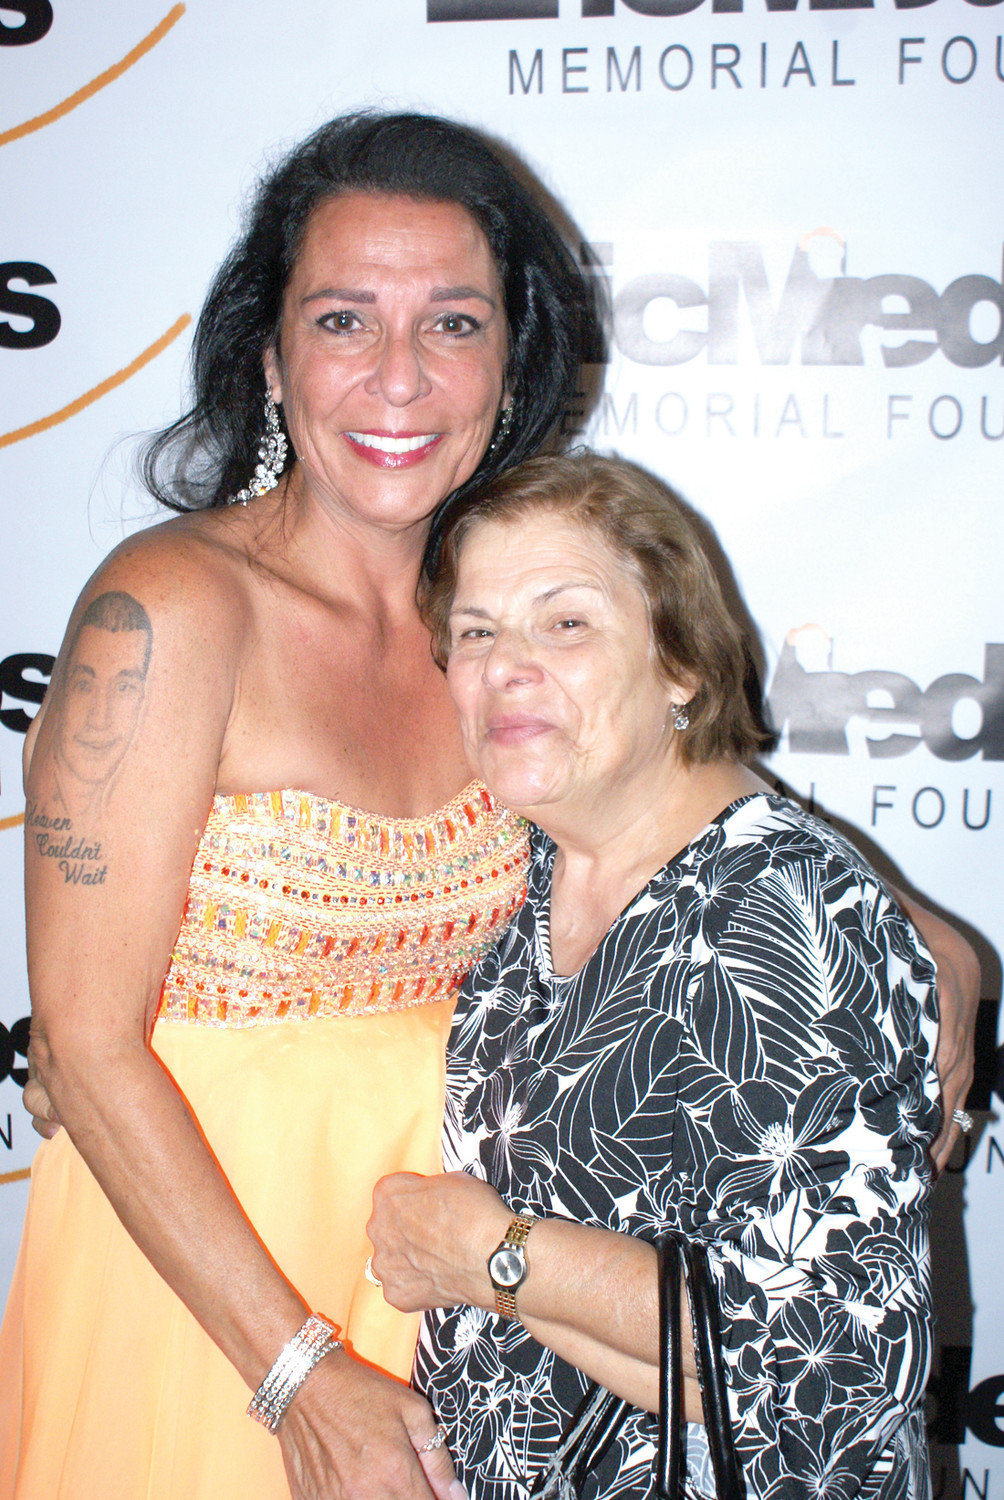 FAMILY MATTERS: Esmeralda Casador posed with her daughter Anna Casador at the Annual Eric Medeiros Memorial Foundation Gala held at Spain Restaurant in Cranston on Sept. 4. Money raised at the Gala is distributed among local charities.